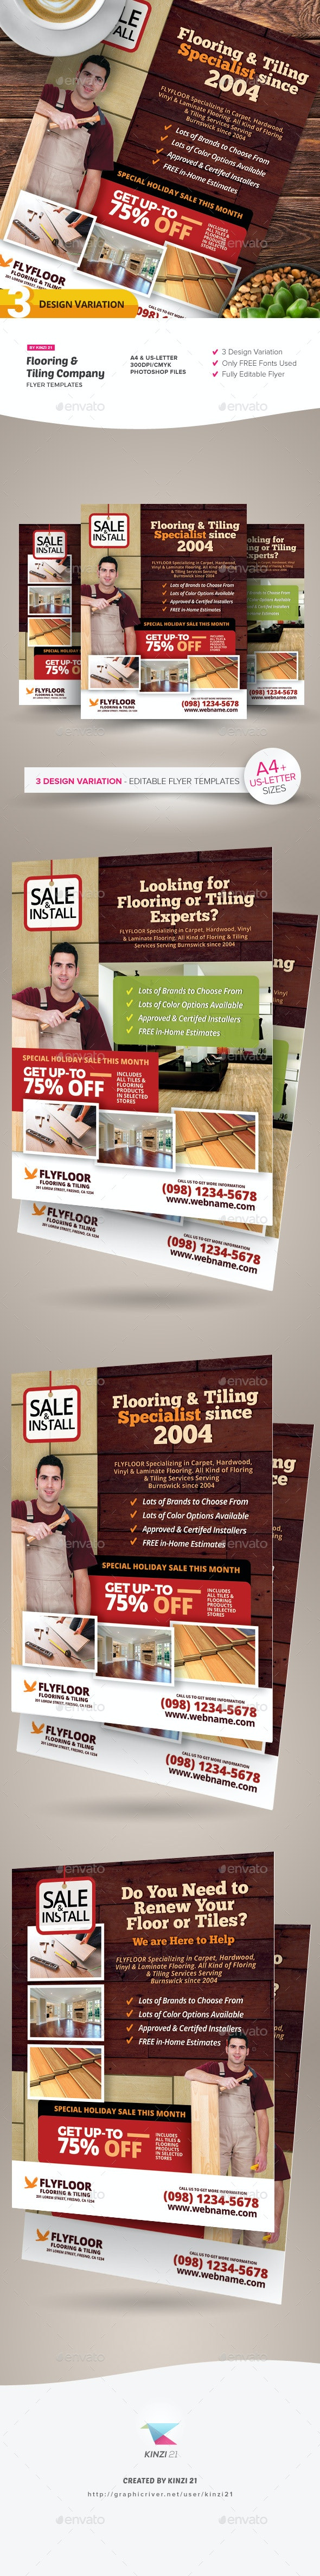 Flooring & Tiling Company Flyer Templates - Corporate Flyers